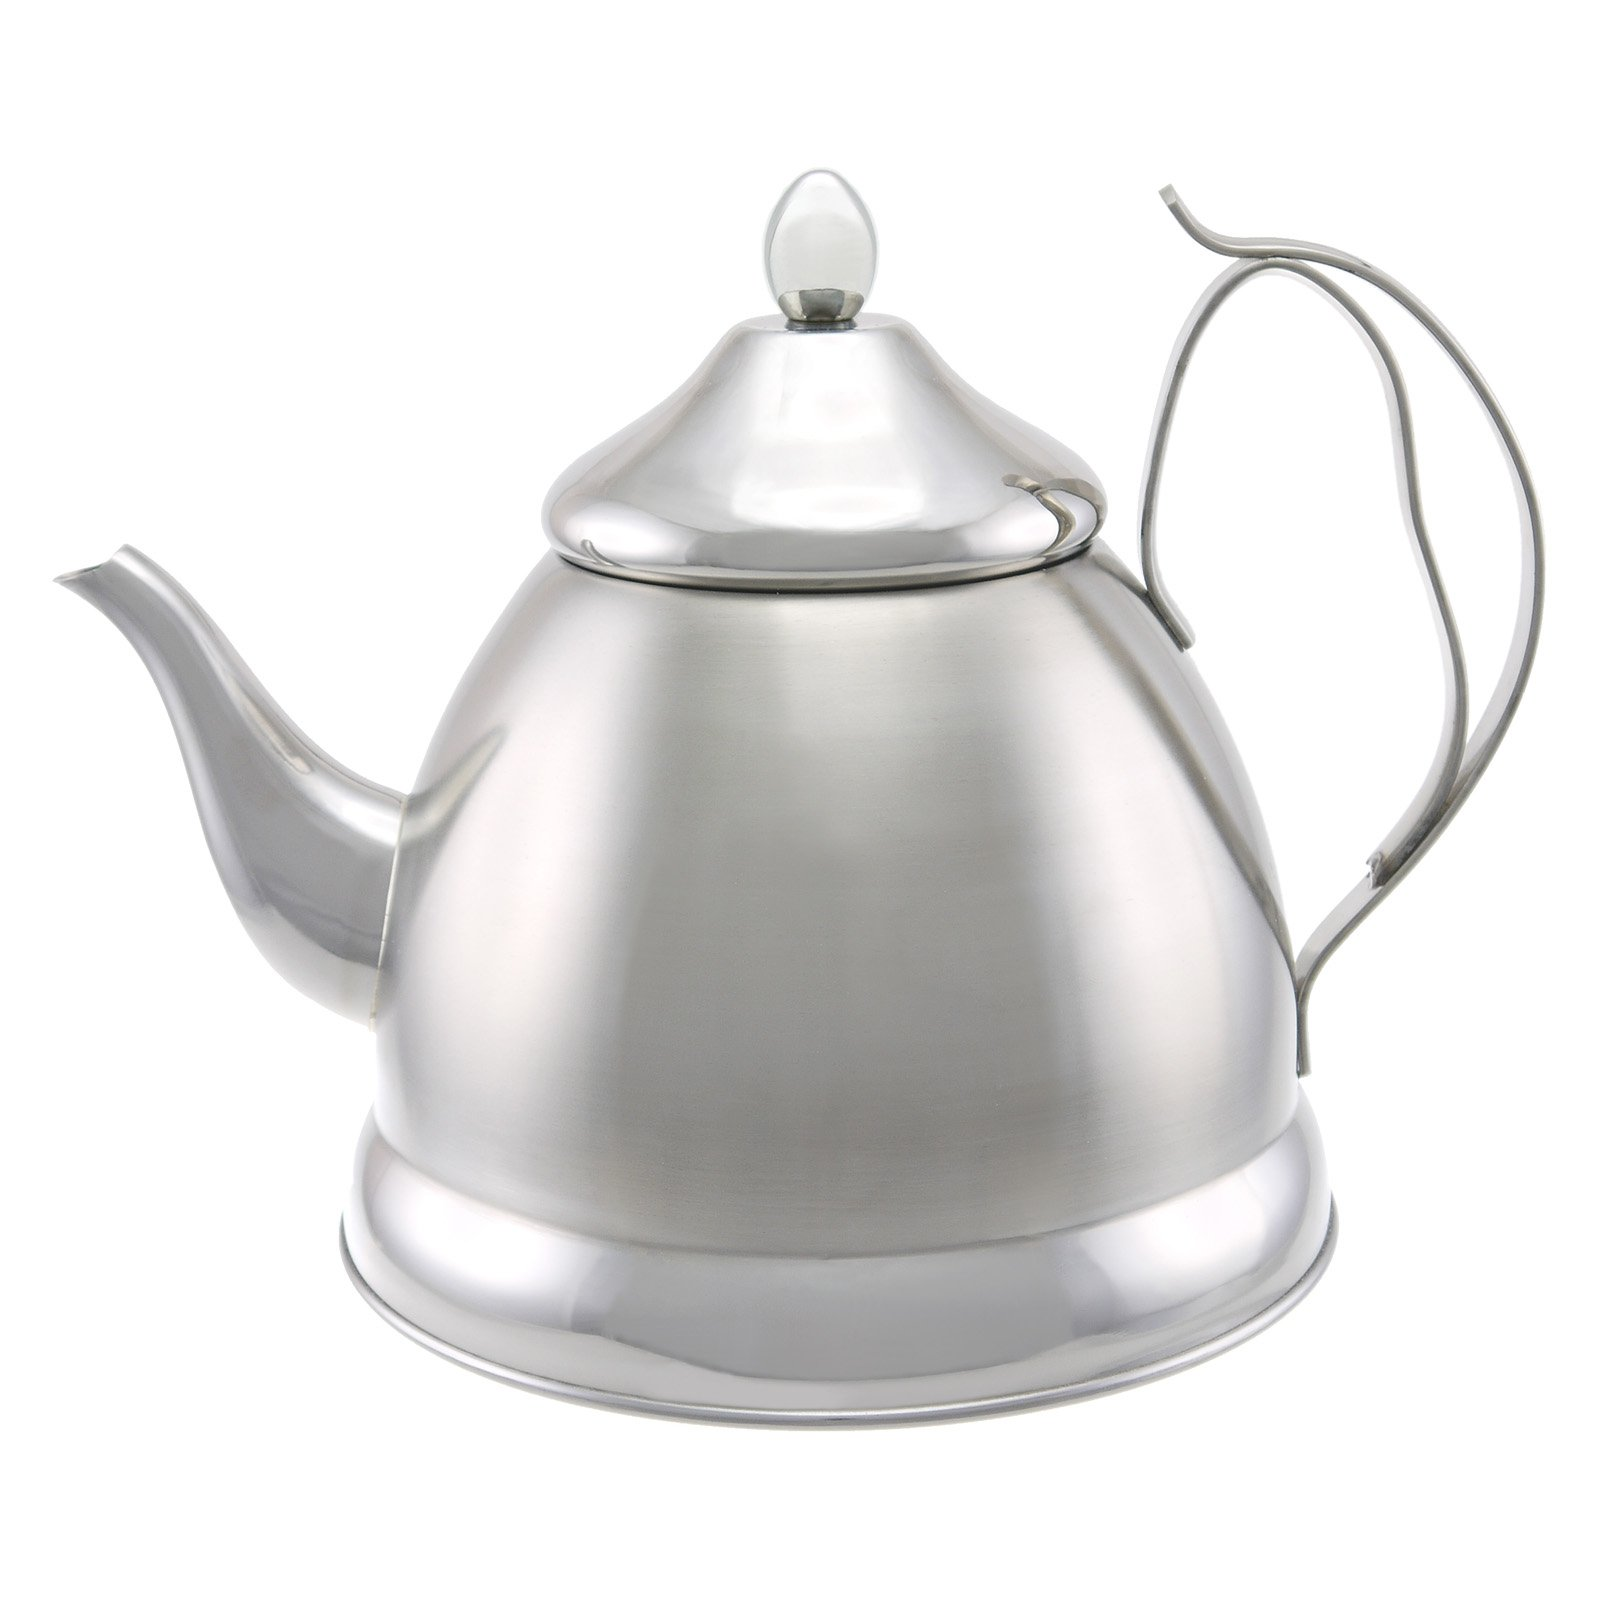 how to clean a burned stainless steel tea kettle